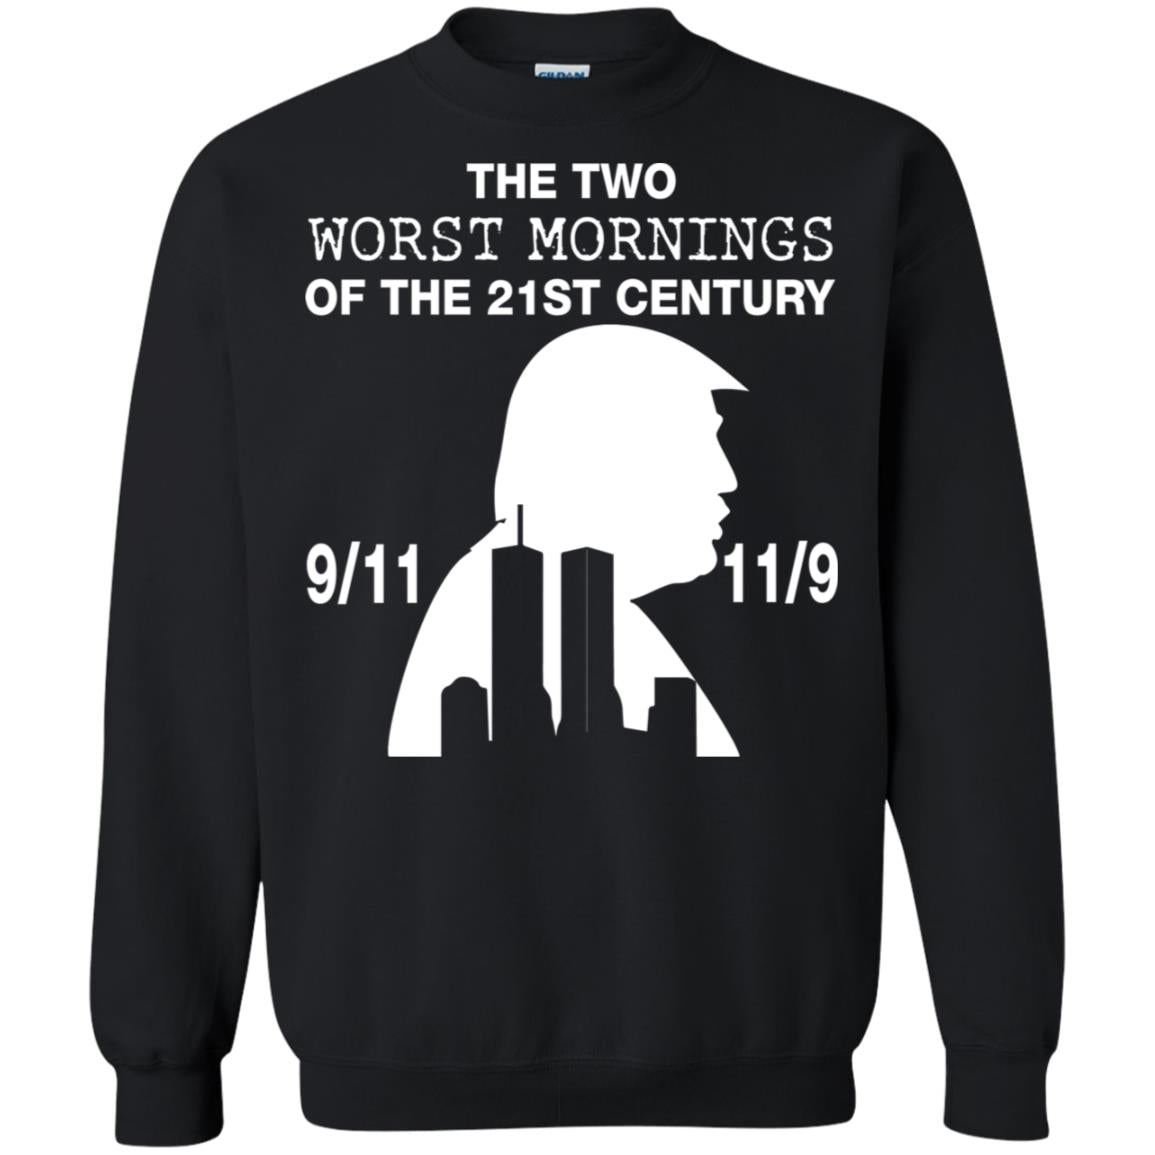 The two worst morning of the 21st century